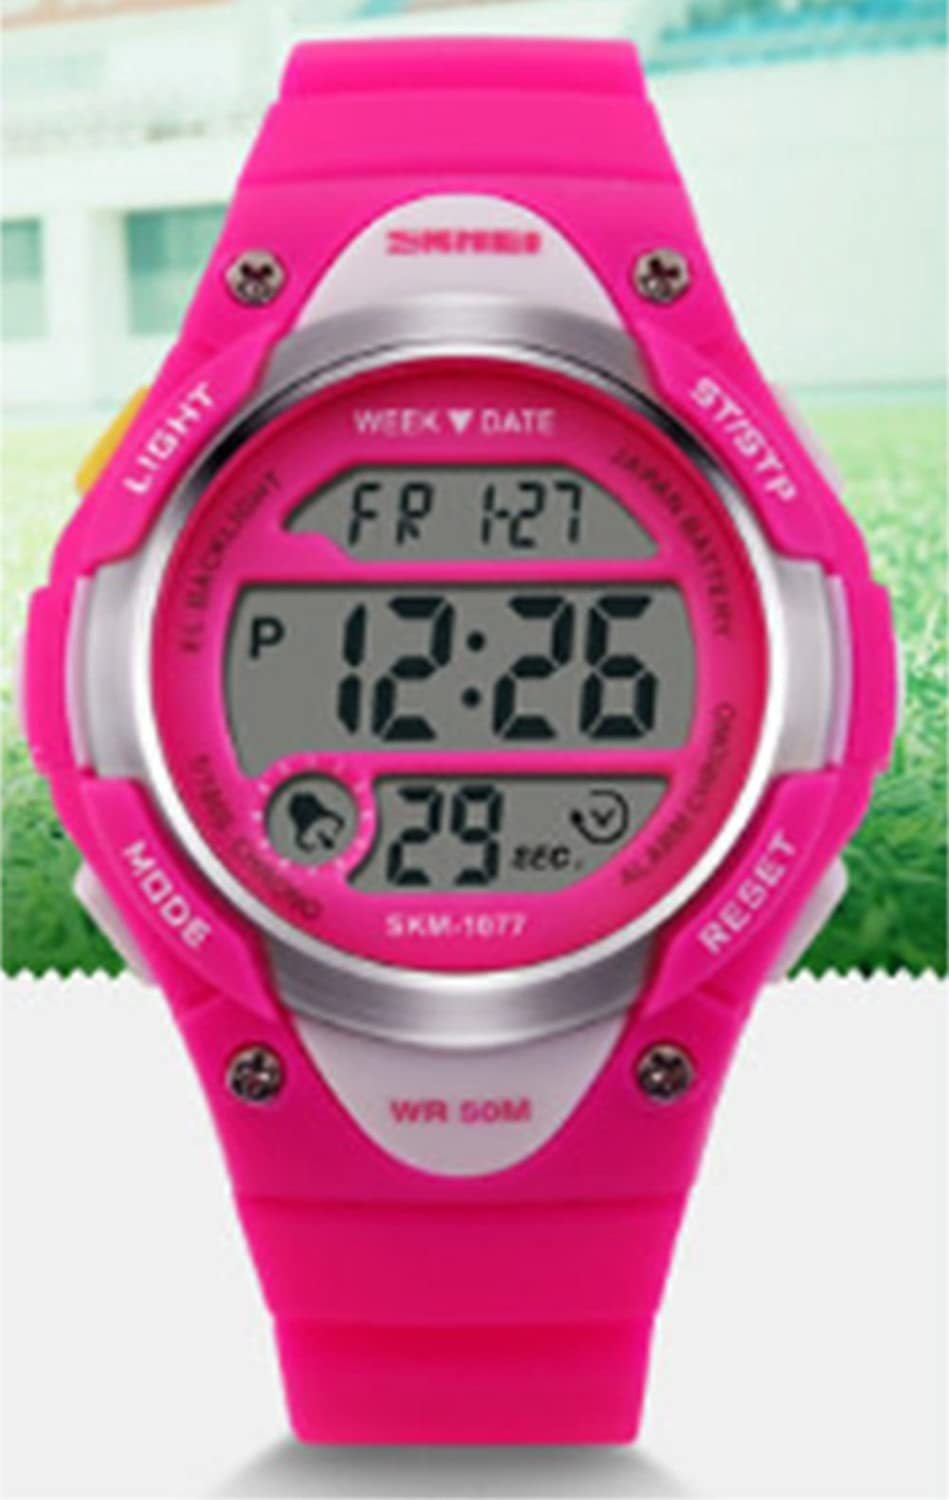 Amazon.com: Cute Rose Pink Beautiful Sports Digital Wristwatch for Girls Delicate Silicone Rubber Strap Watches: Watches